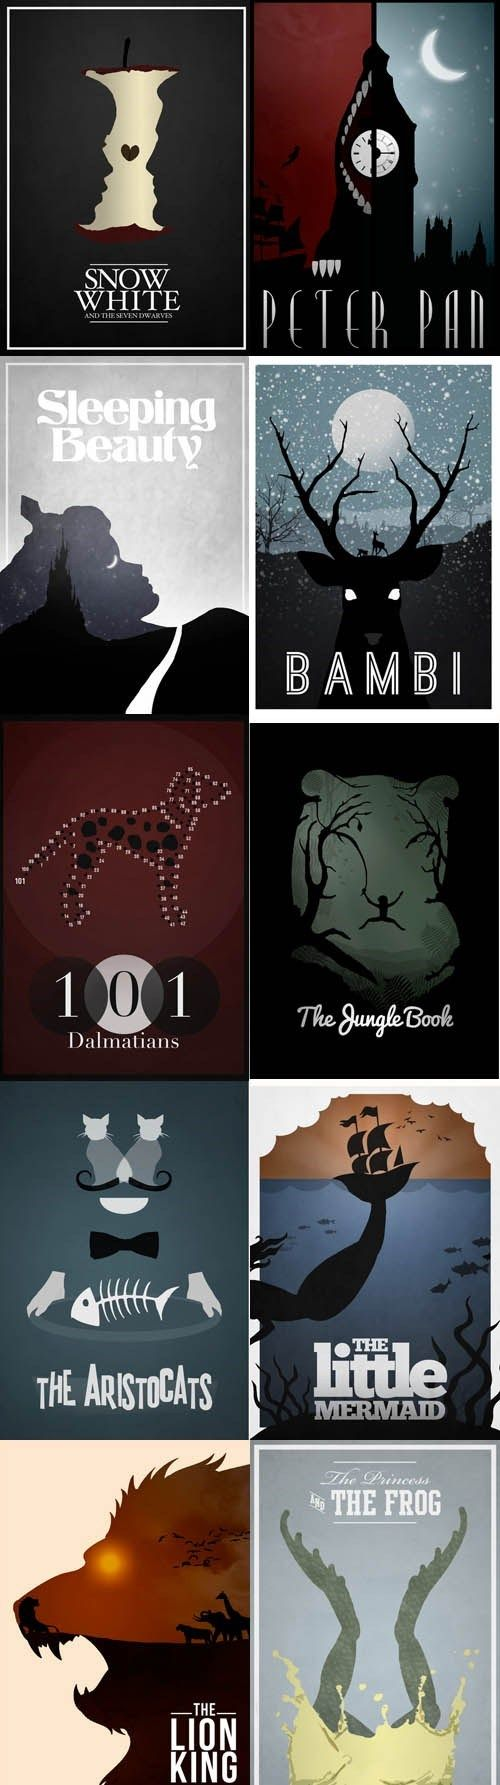 Disney velvet coloring posters - Minimalist Disney Movie Posters